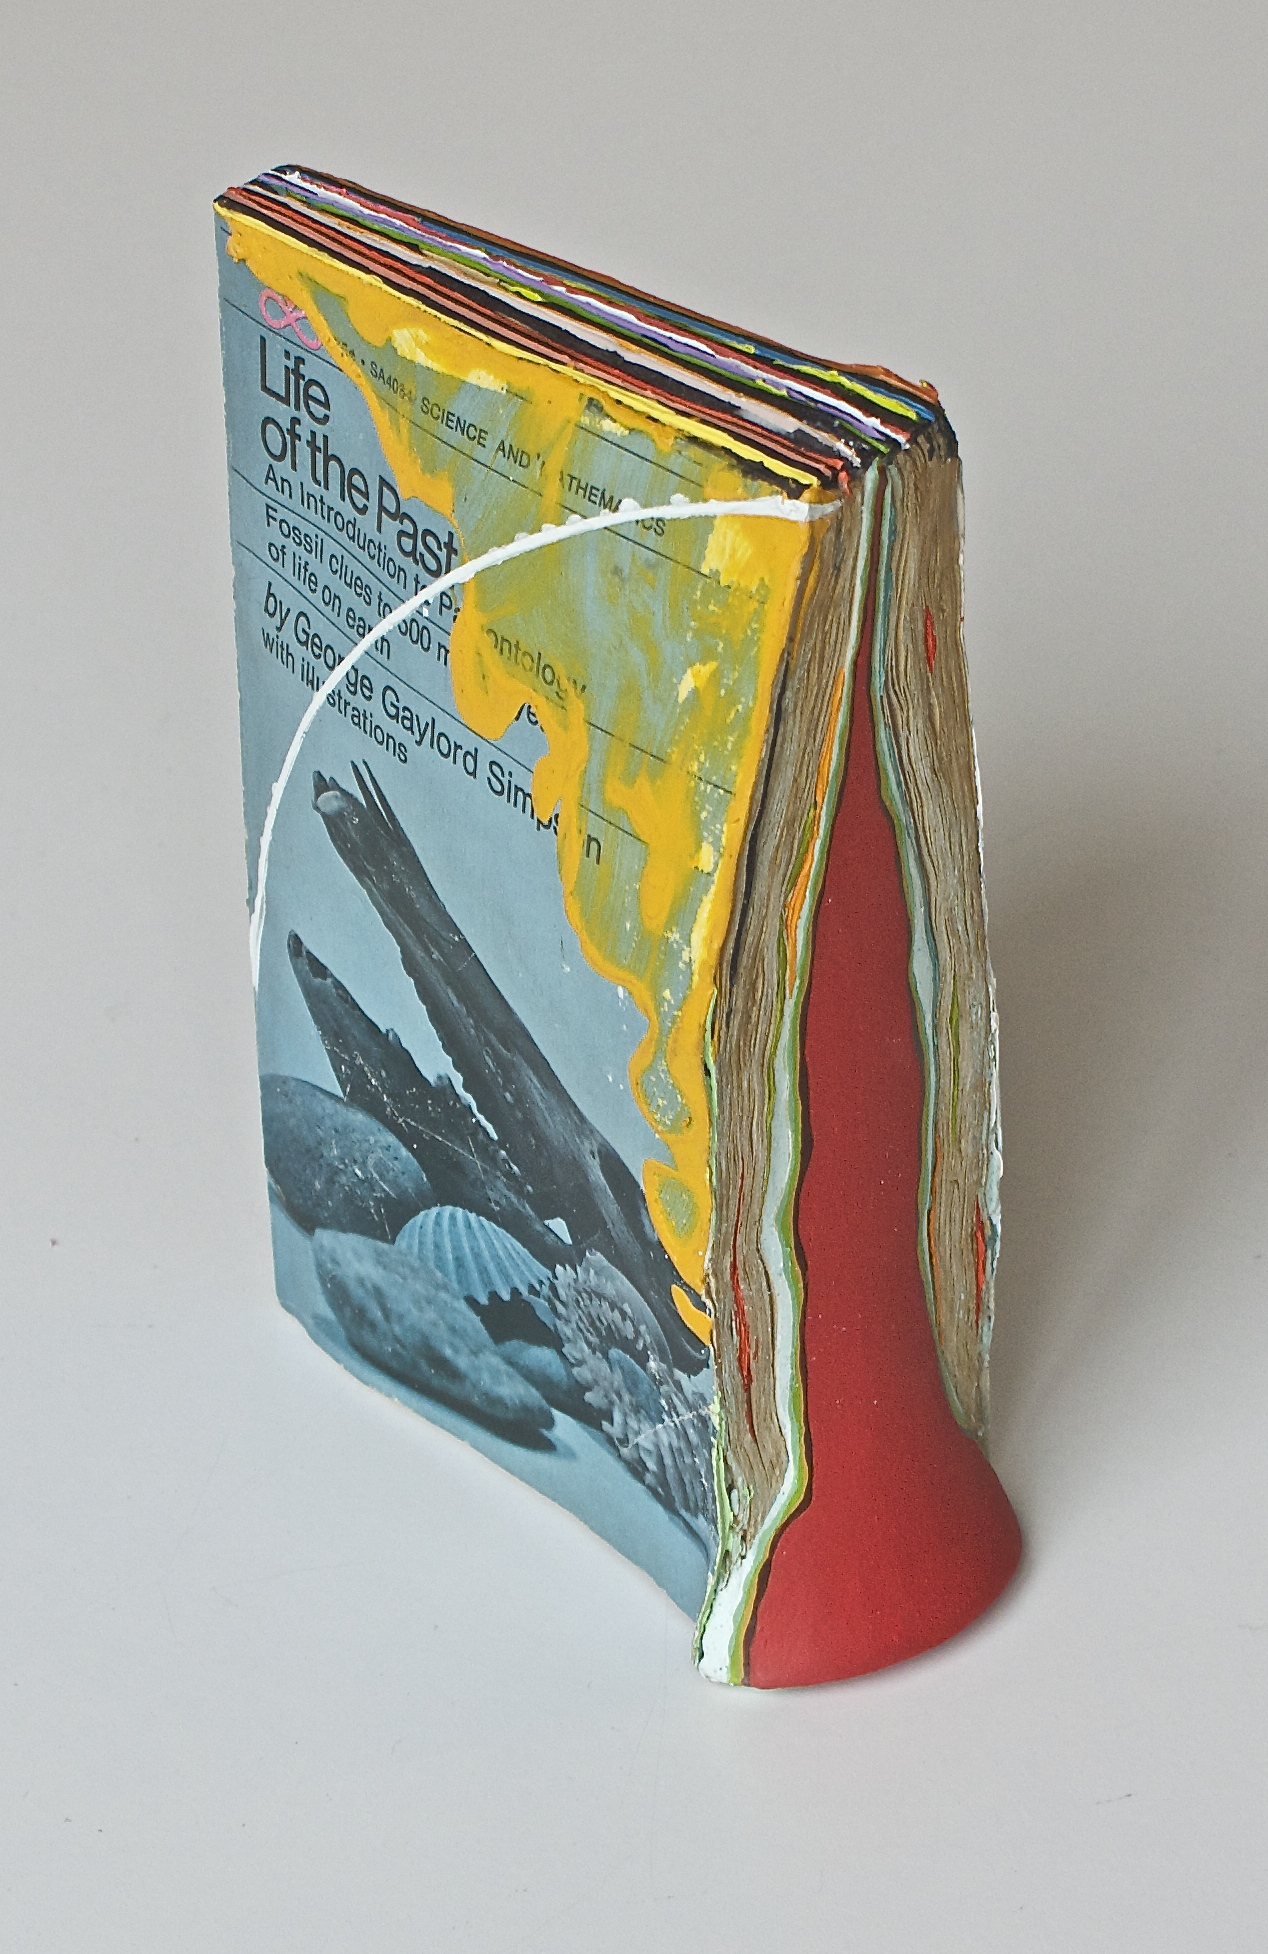 Life of the Past 2016  acrylic on hydrocal and found book  7.25 x 4.5 x 2.5